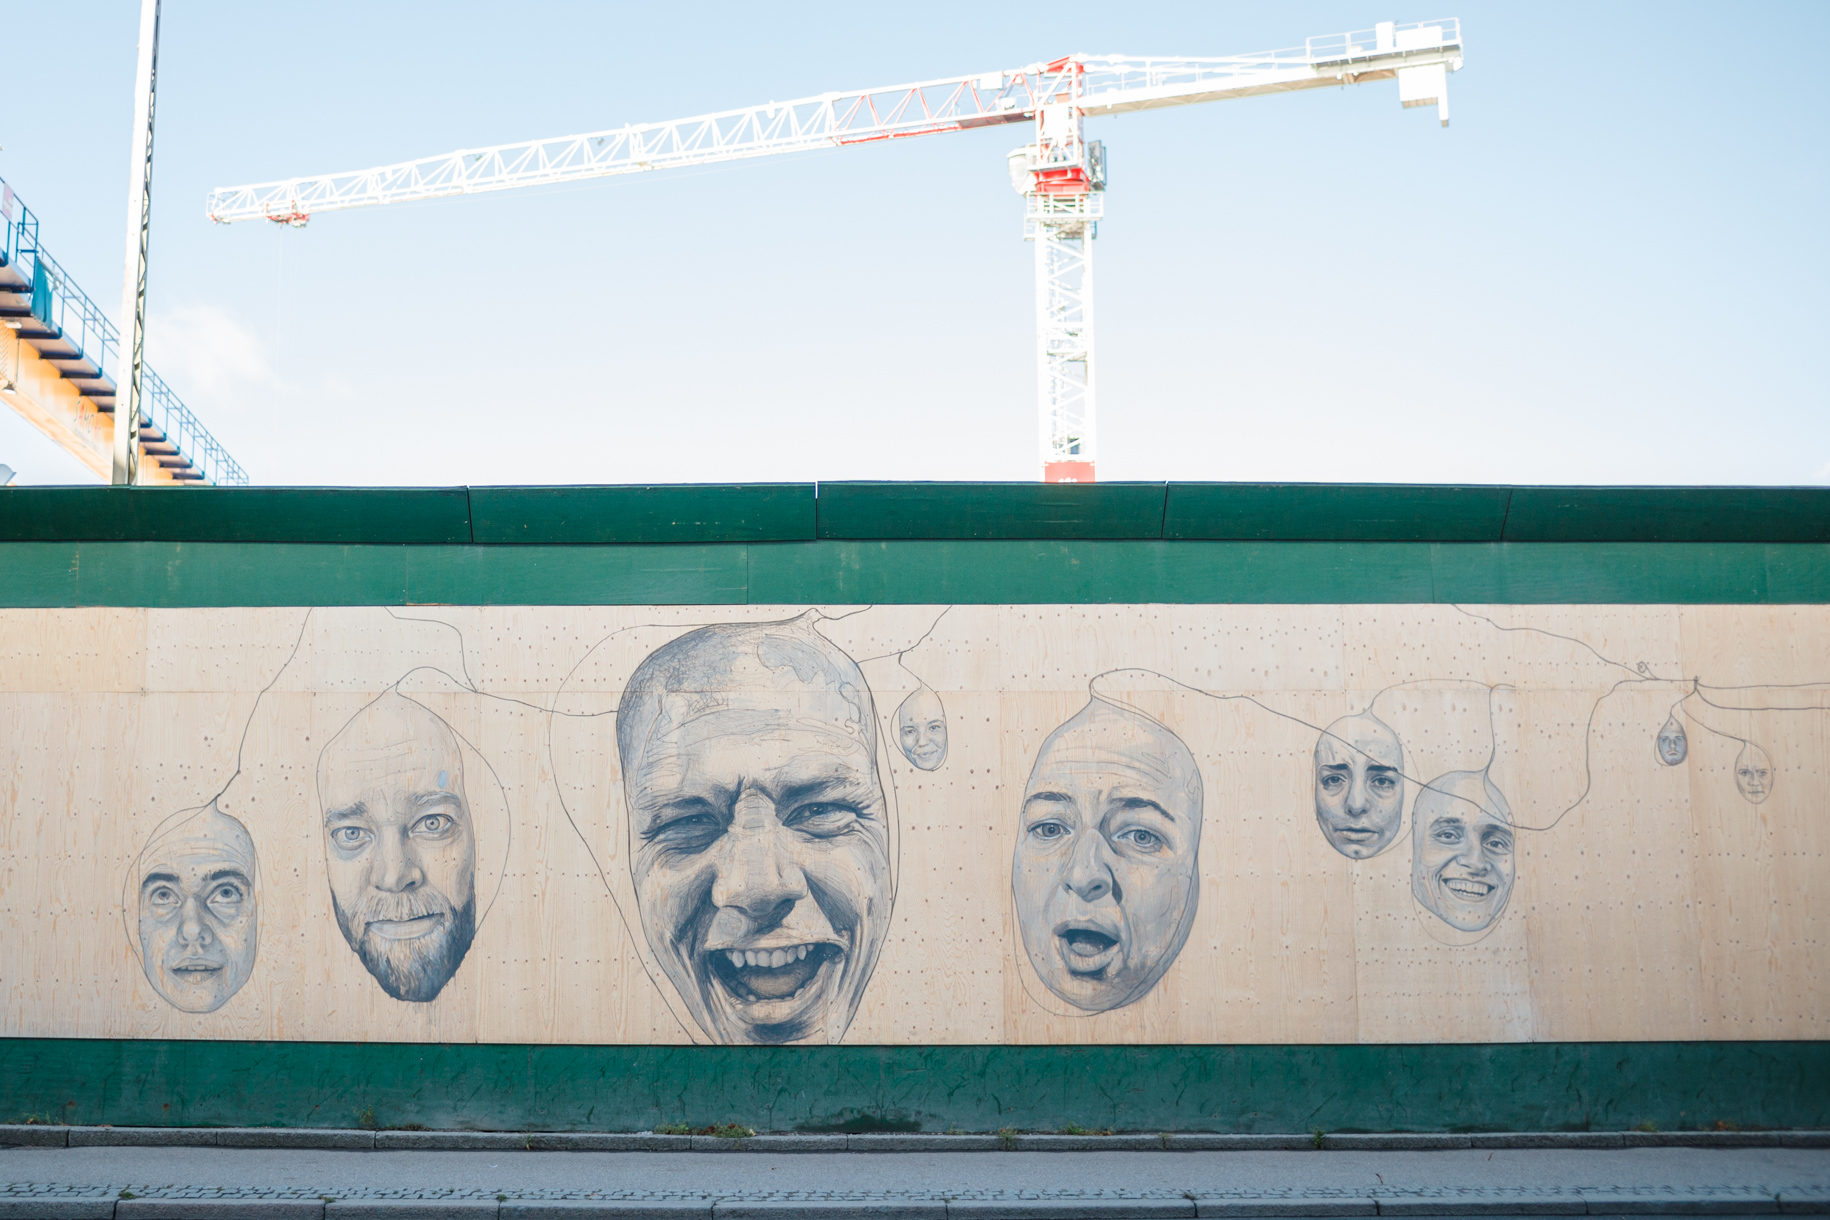 The walls that cover up construction sites in Copenhagen are decorated with amazing artwork.